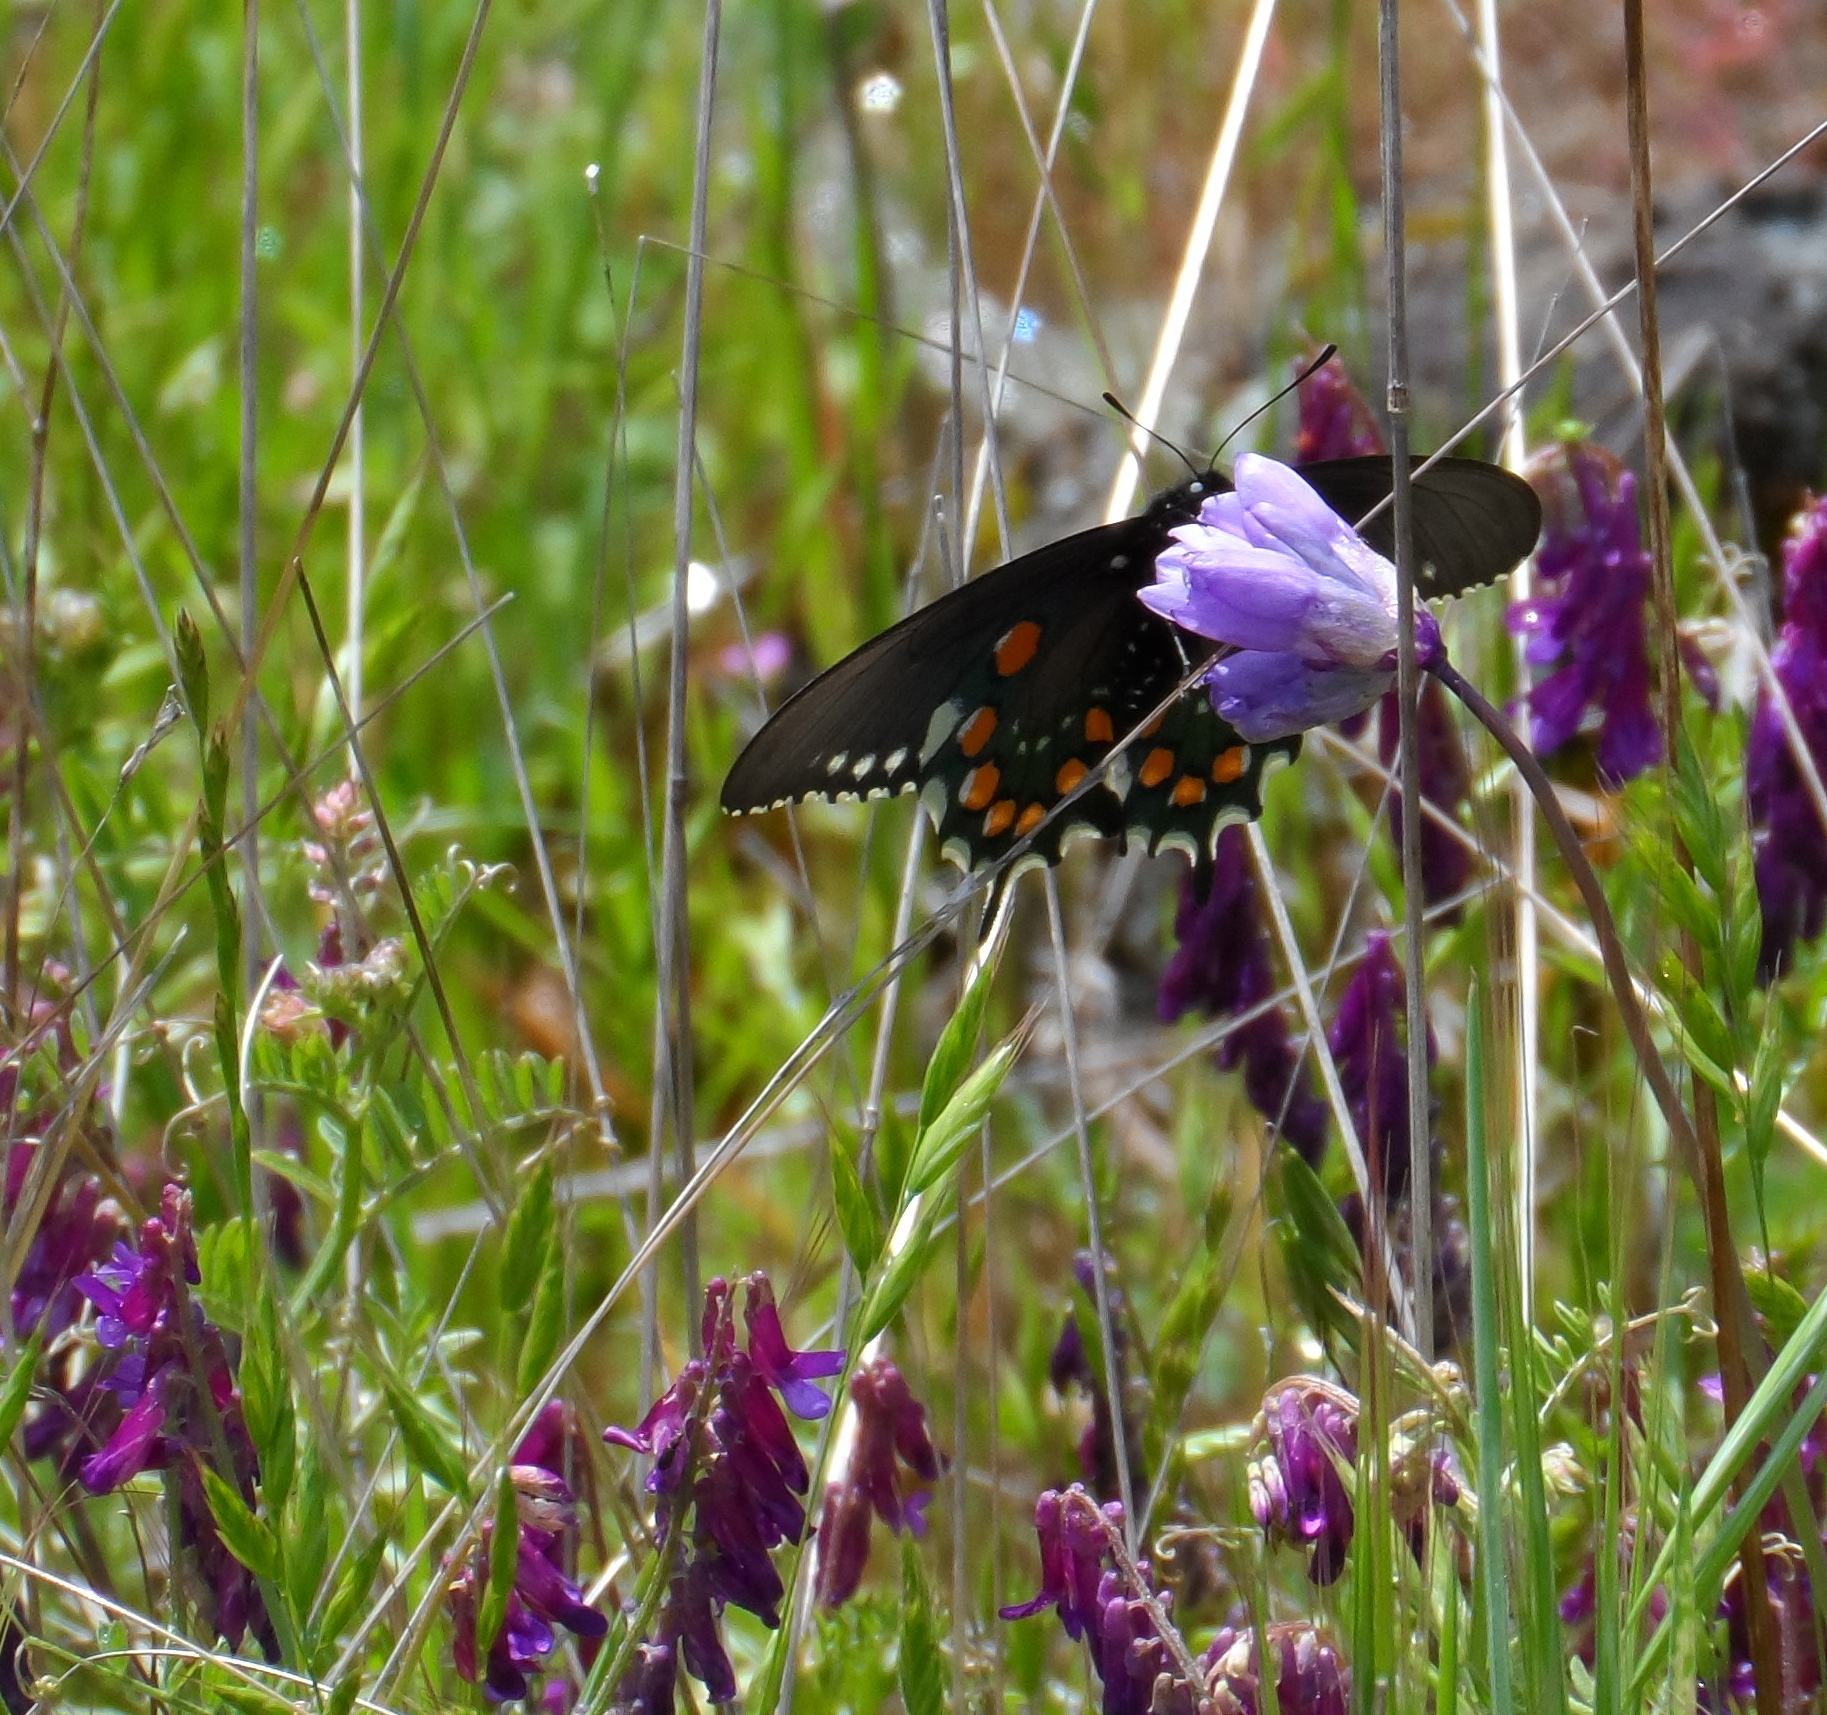 A butterfly that went along with me for a while on a hike.